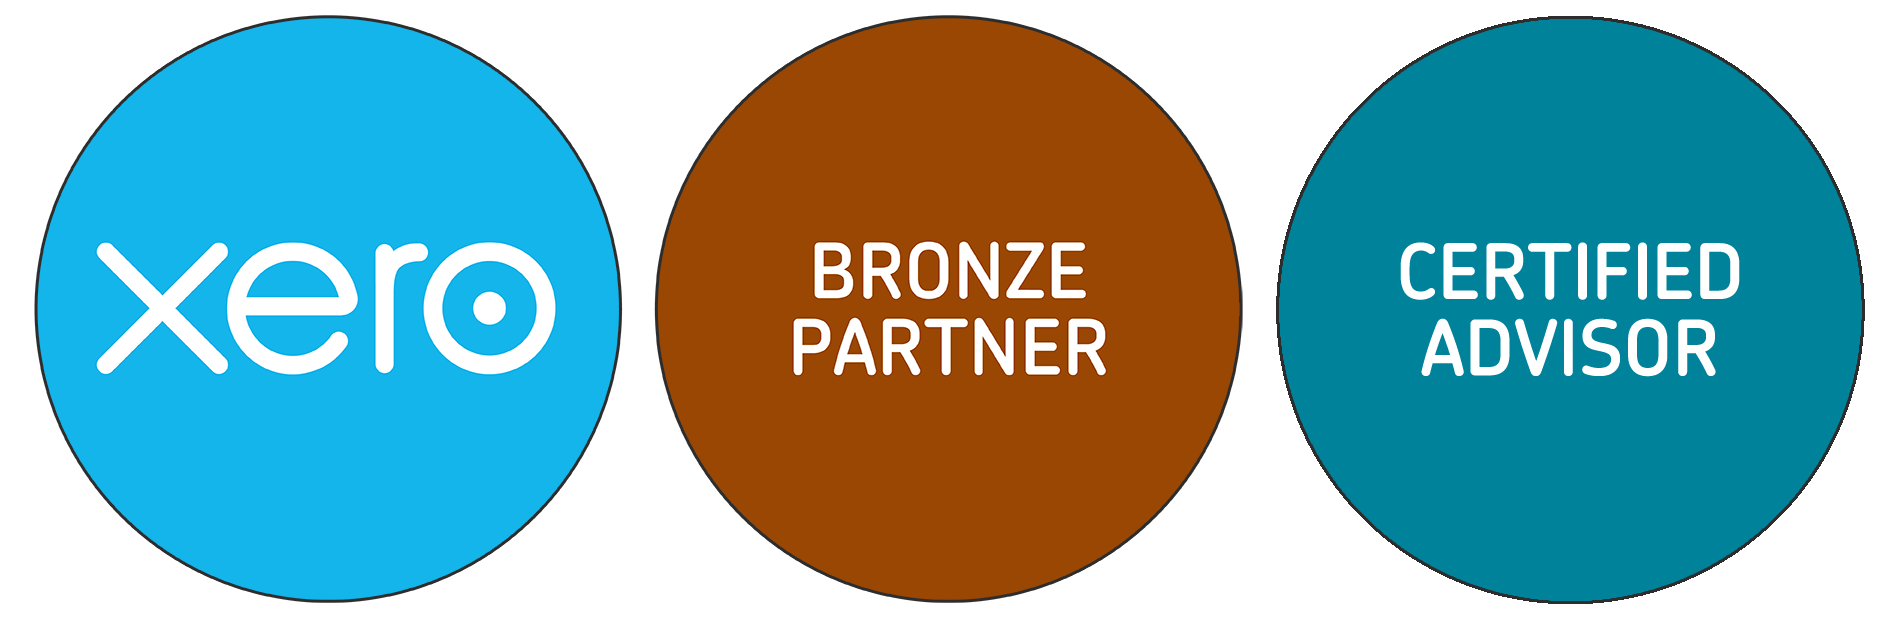 Xero Certified Advisor | Xero Bronze Partner | Caterham | Frances Conn | Figureweave Accountancy